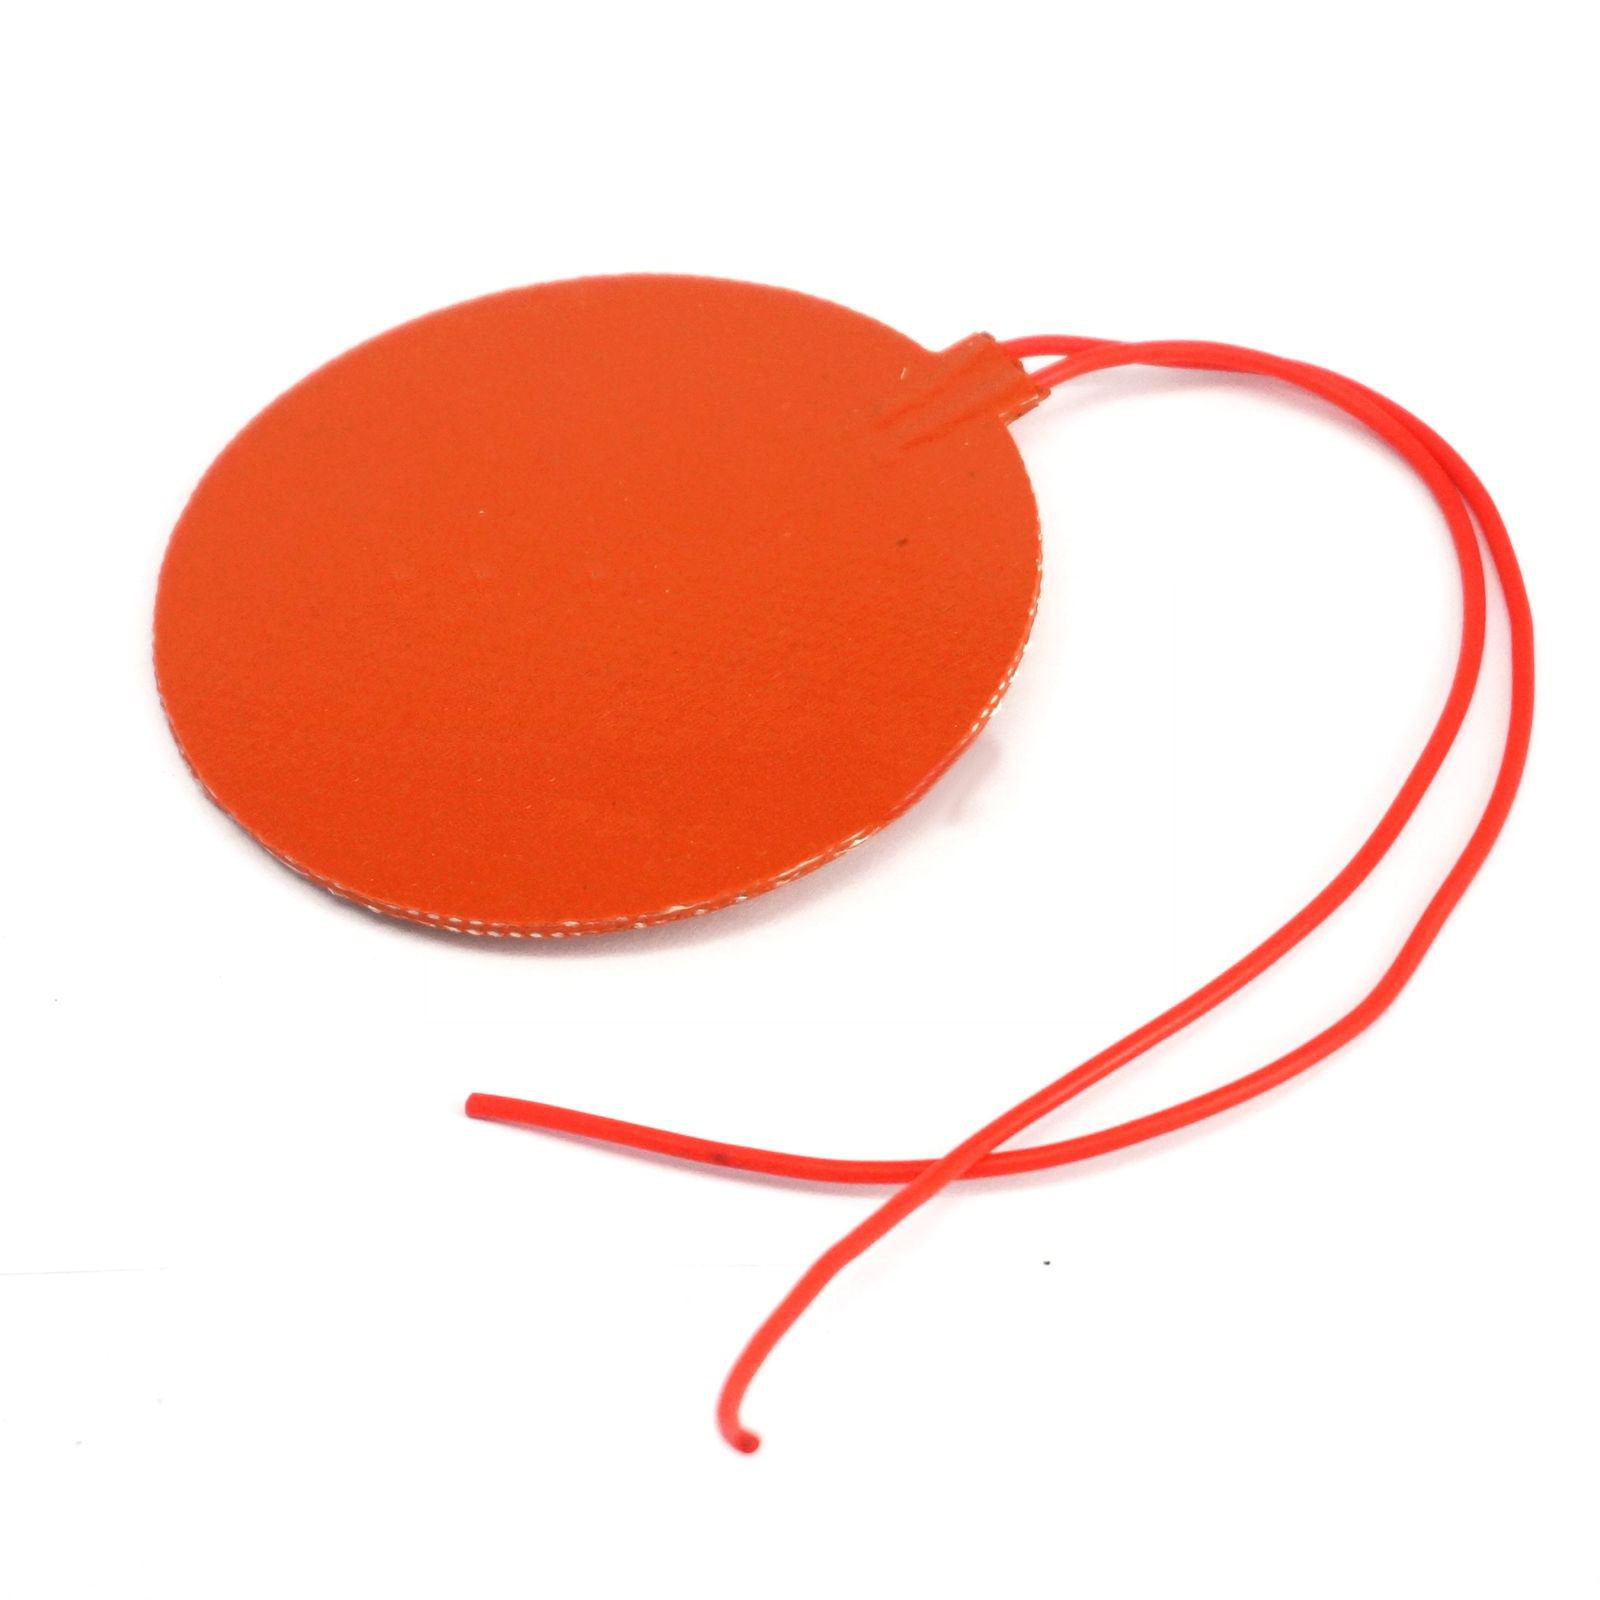 Waterproof Heating Pad Heated Round For 3D Printer 12V DC 15W Flexible Silicone Rubber Heater 80mm Sale